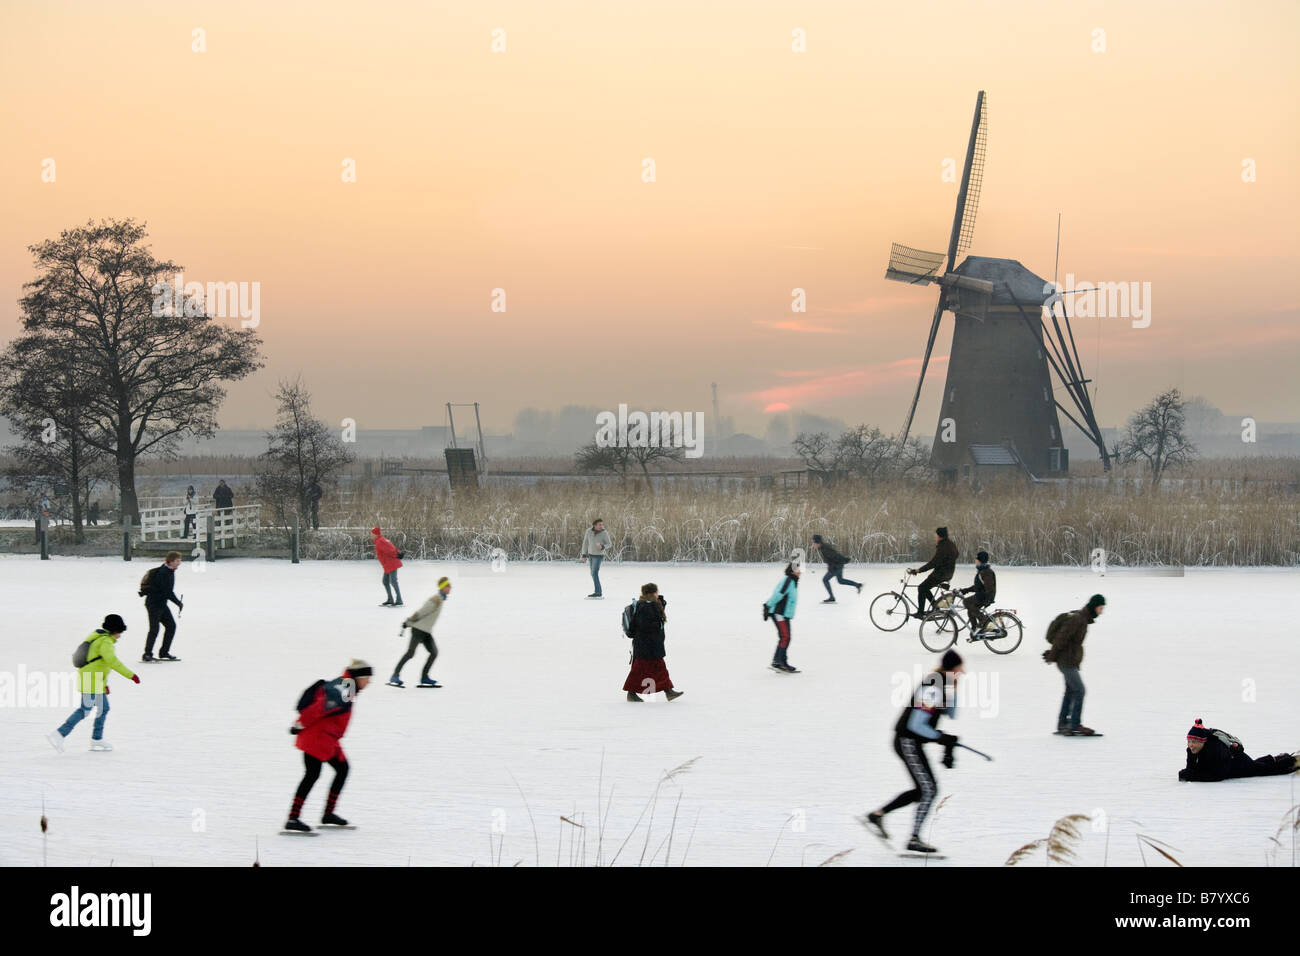 Ice skaters and even cyclists on natural ice in front of a windmill at Kinderdijk Holland, The Netherlands. At sunset. Stock Photo